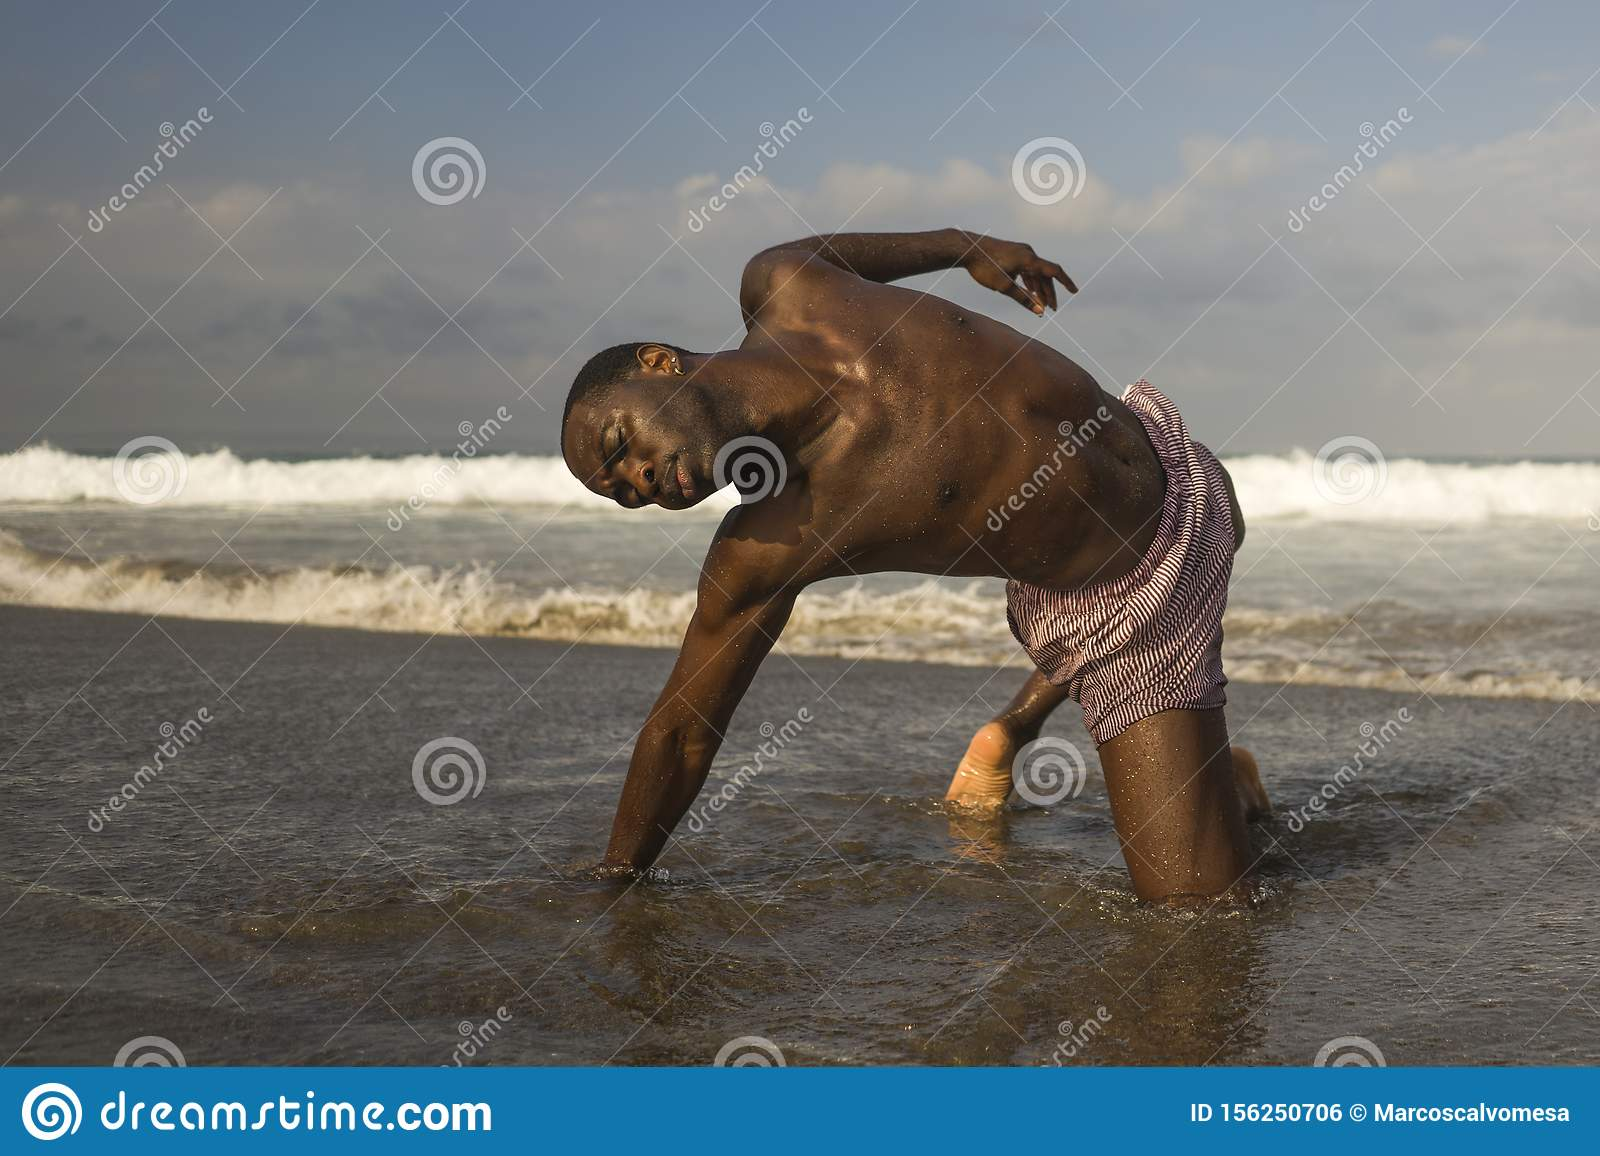 Contemporary dance choreographer and dancer doing ballet beach workout . a young attractive and athletic black African American